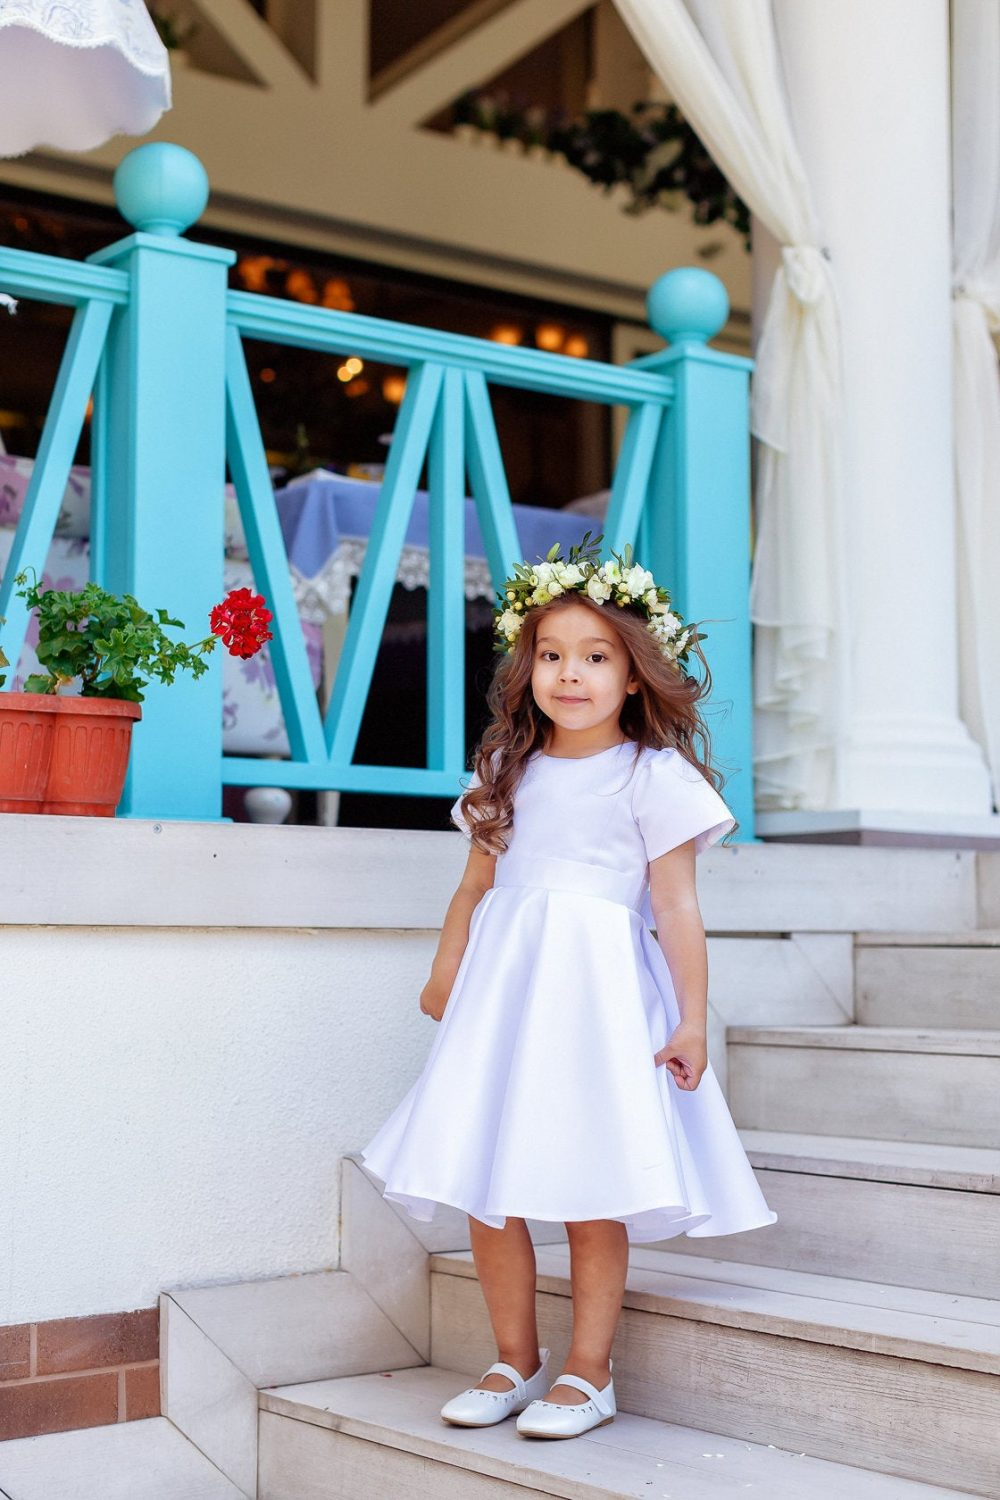 Classic Flower Girl Dress, Flower Dresses, Satin White Dress, Wedding Flower Girl Dress, Dress, Dress